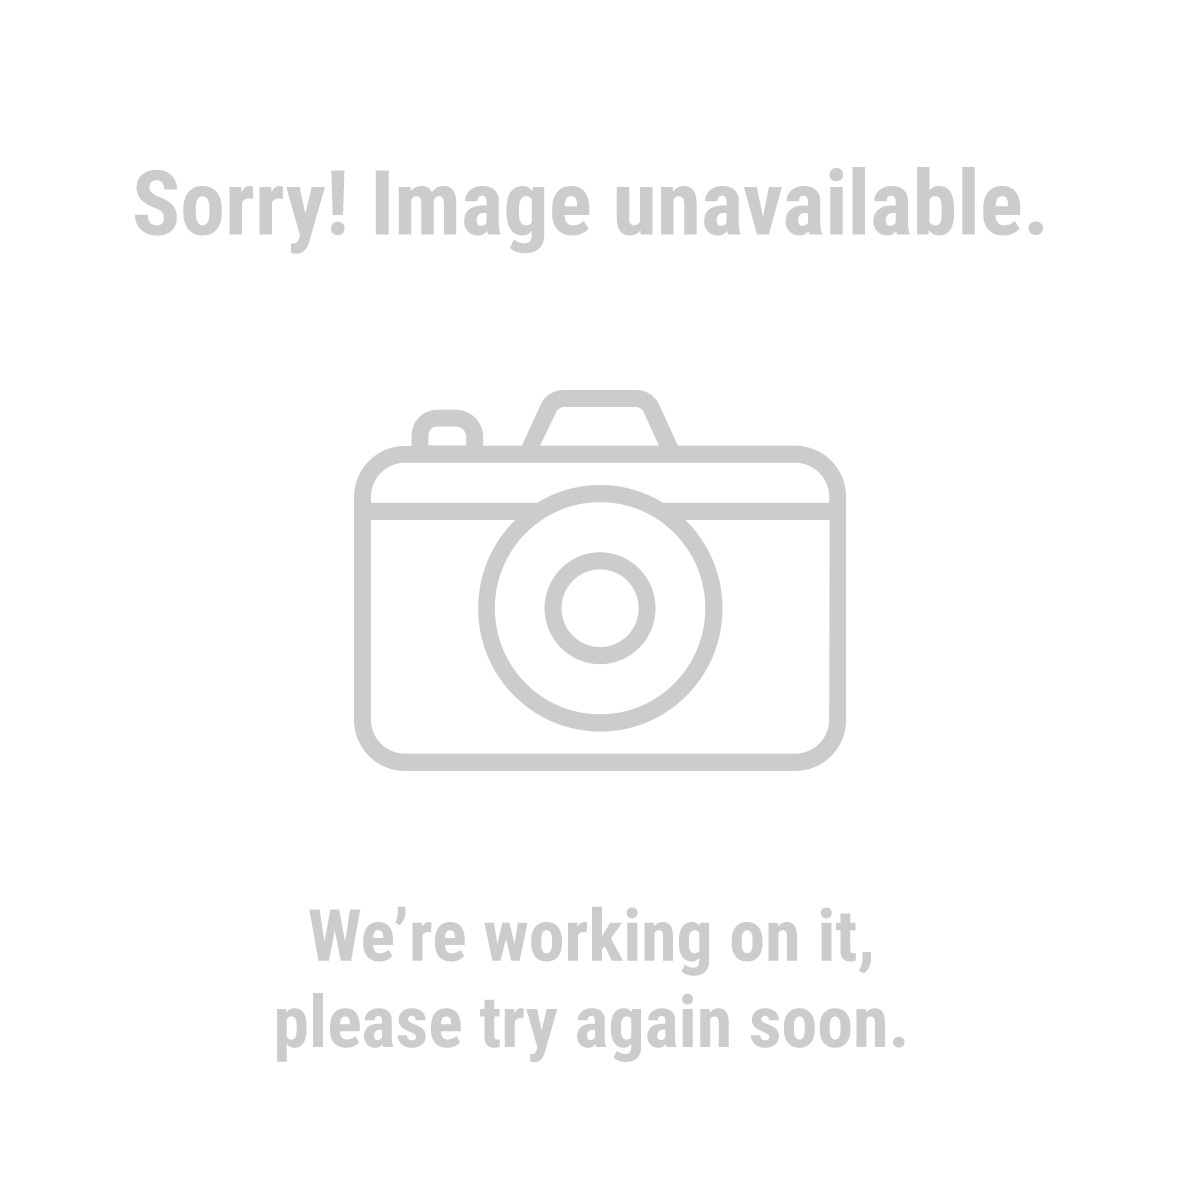 Pacific Hydrostar® 62579 6.5 HP 212cc 2 in. Gas Engine Clear Water Pump 9540 (GPH)